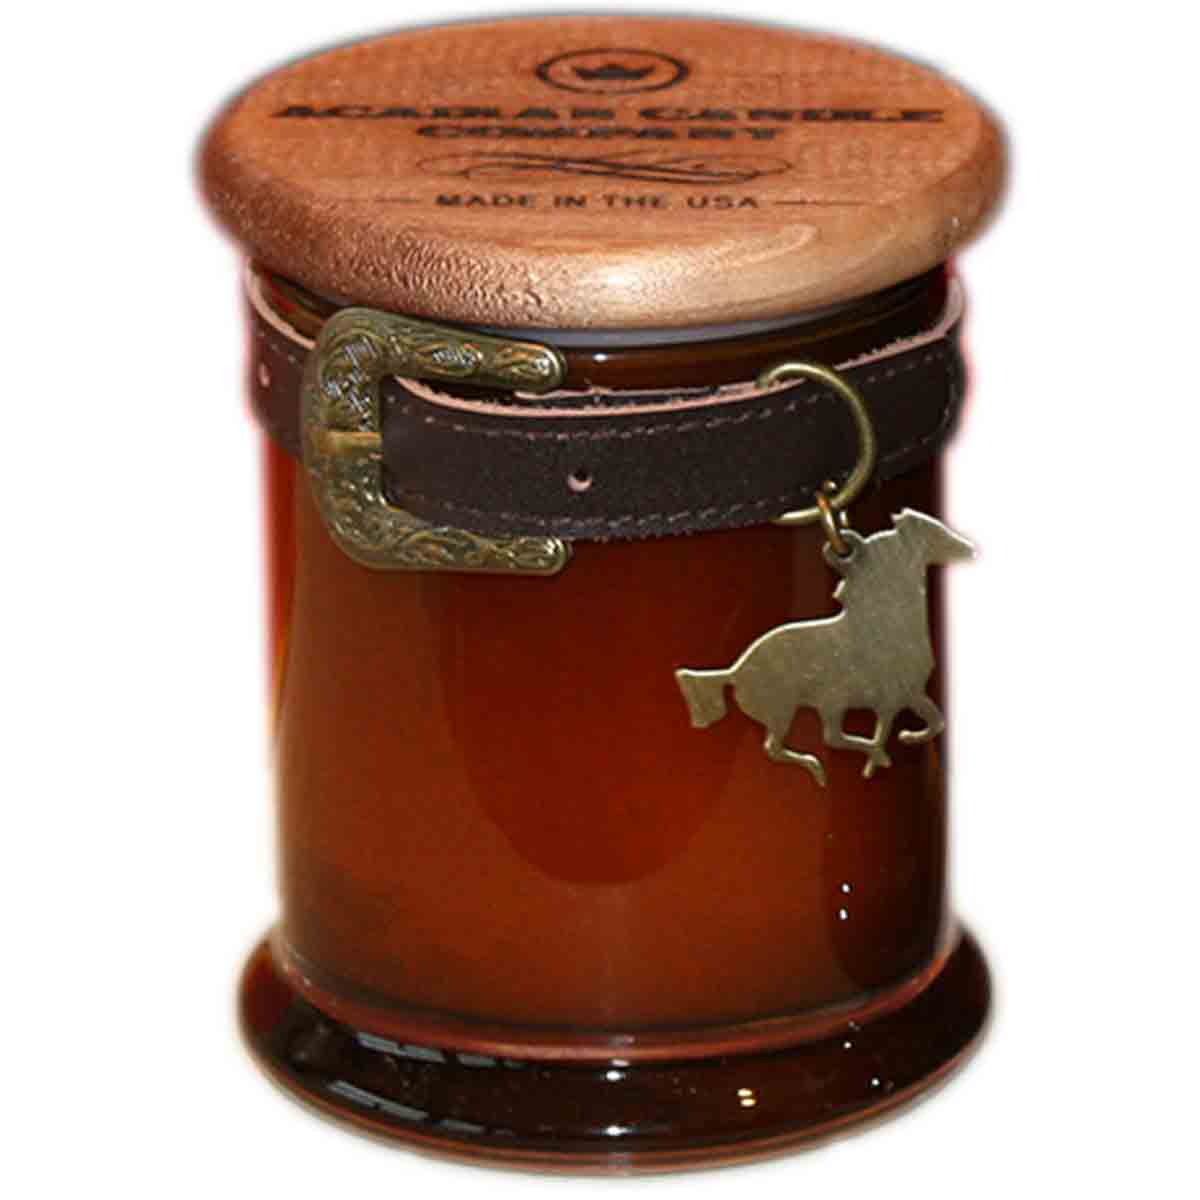 Stallion Belt Candle - Oakmoss and Tobacco Scent